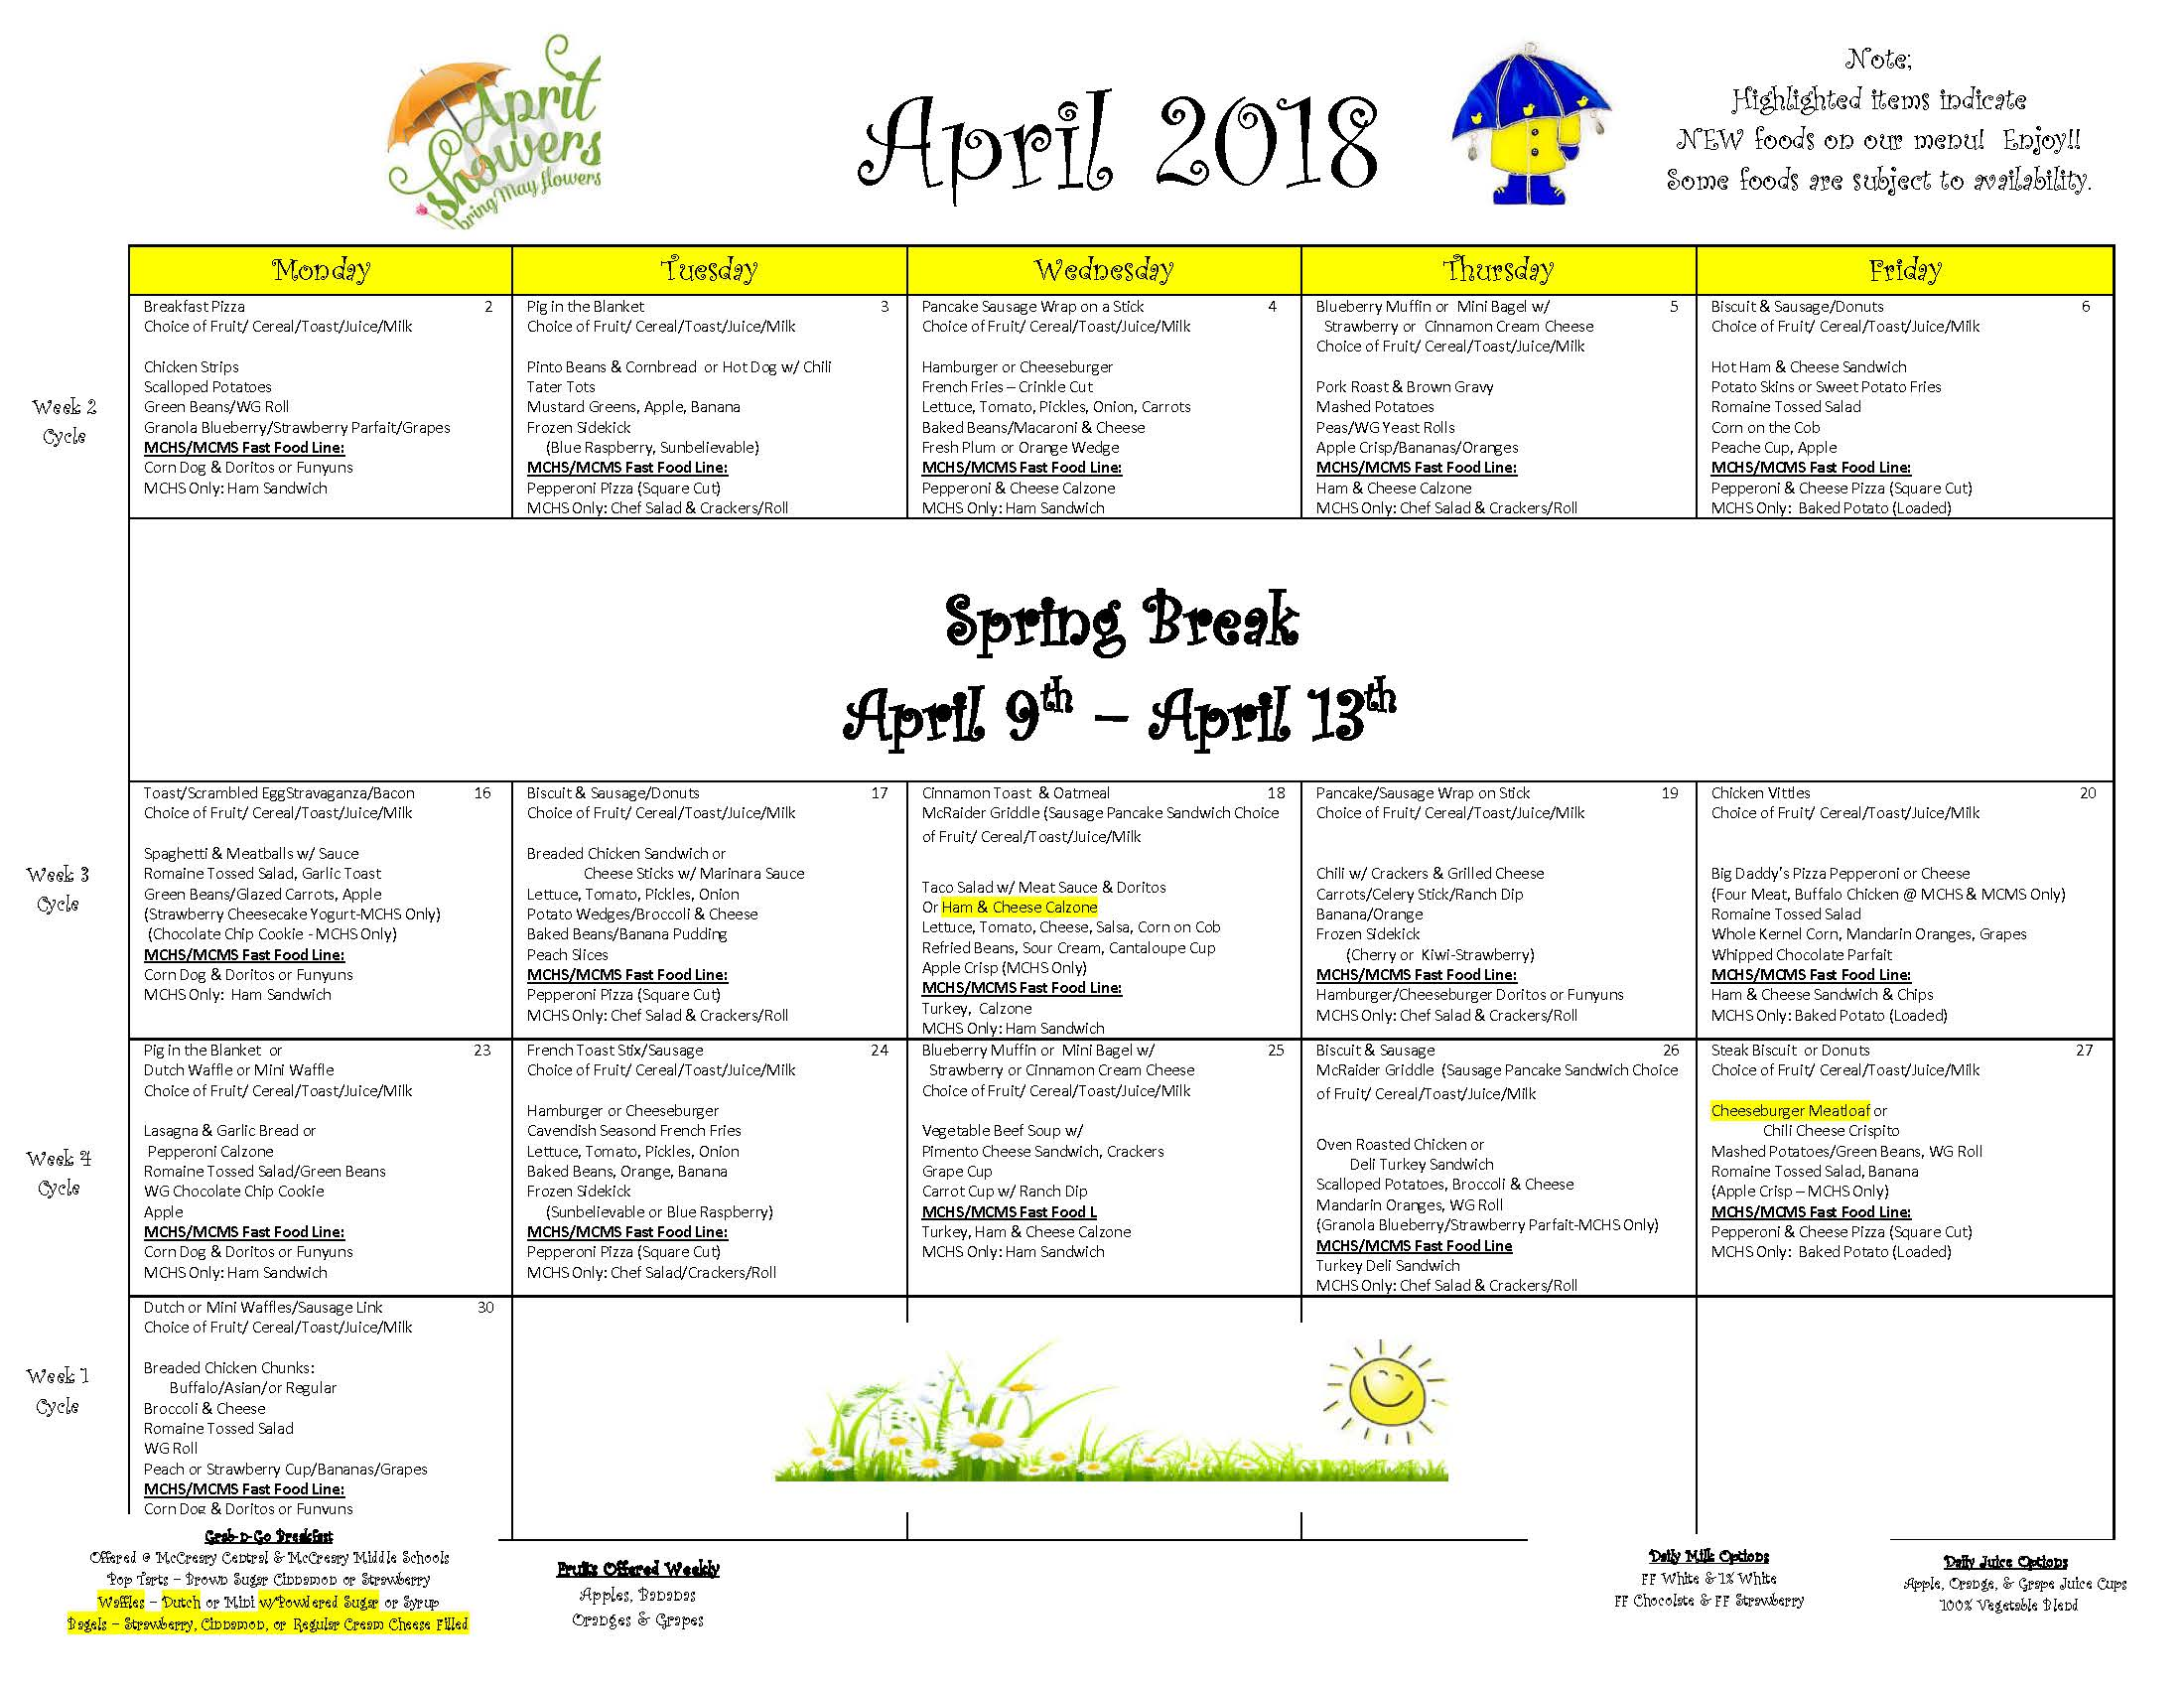 District-wide Breakfast & Lunch Menu For April 2018